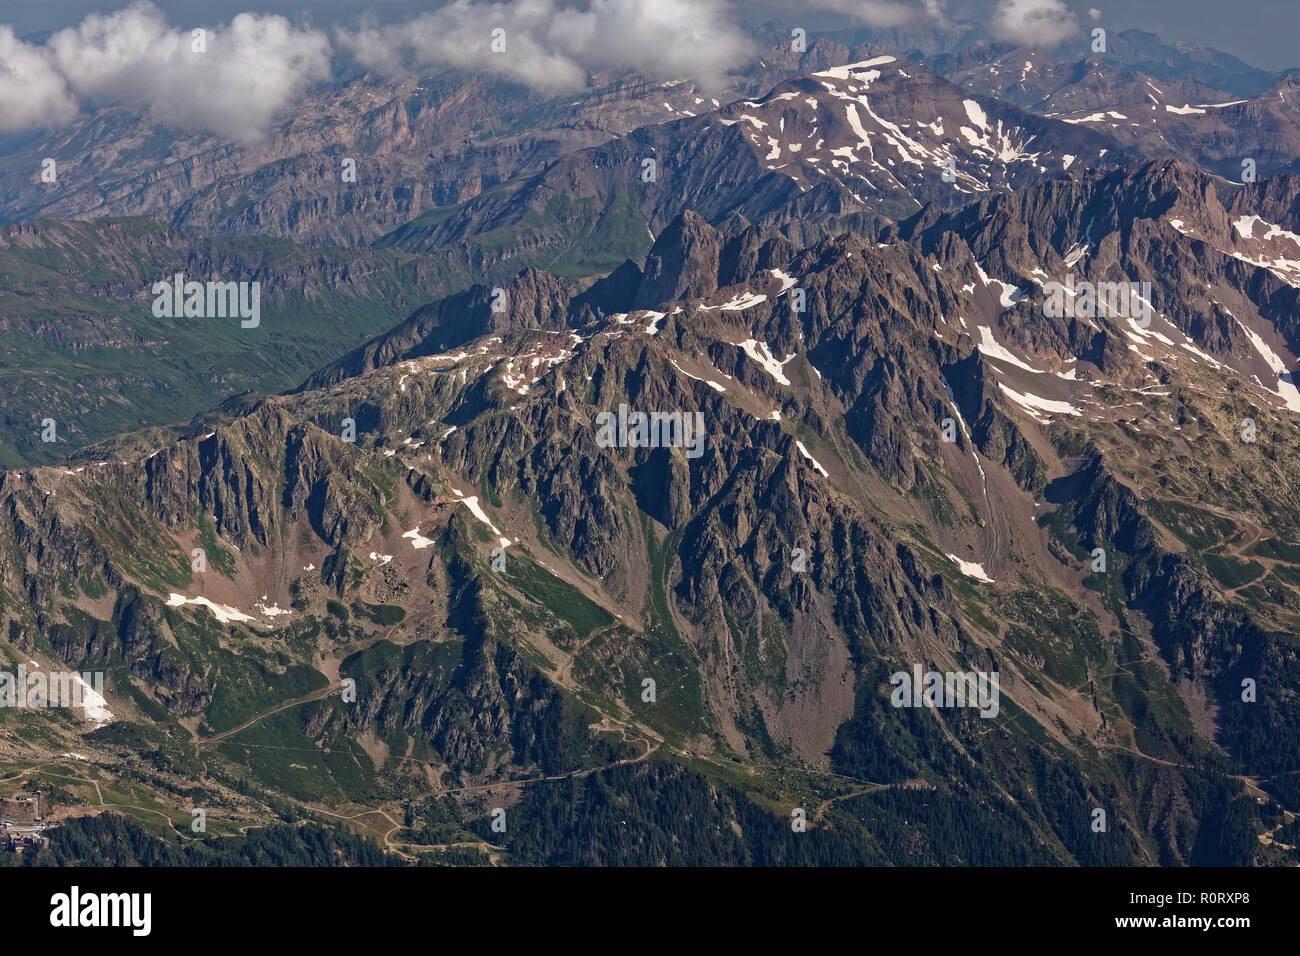 Aiguille du Midi, Chamonix, south-east France, Auvergne-Rhône-Alpes. Sunny views across the Chamonix valley at Aiguilles Rouges mountain massive from  - Stock Image